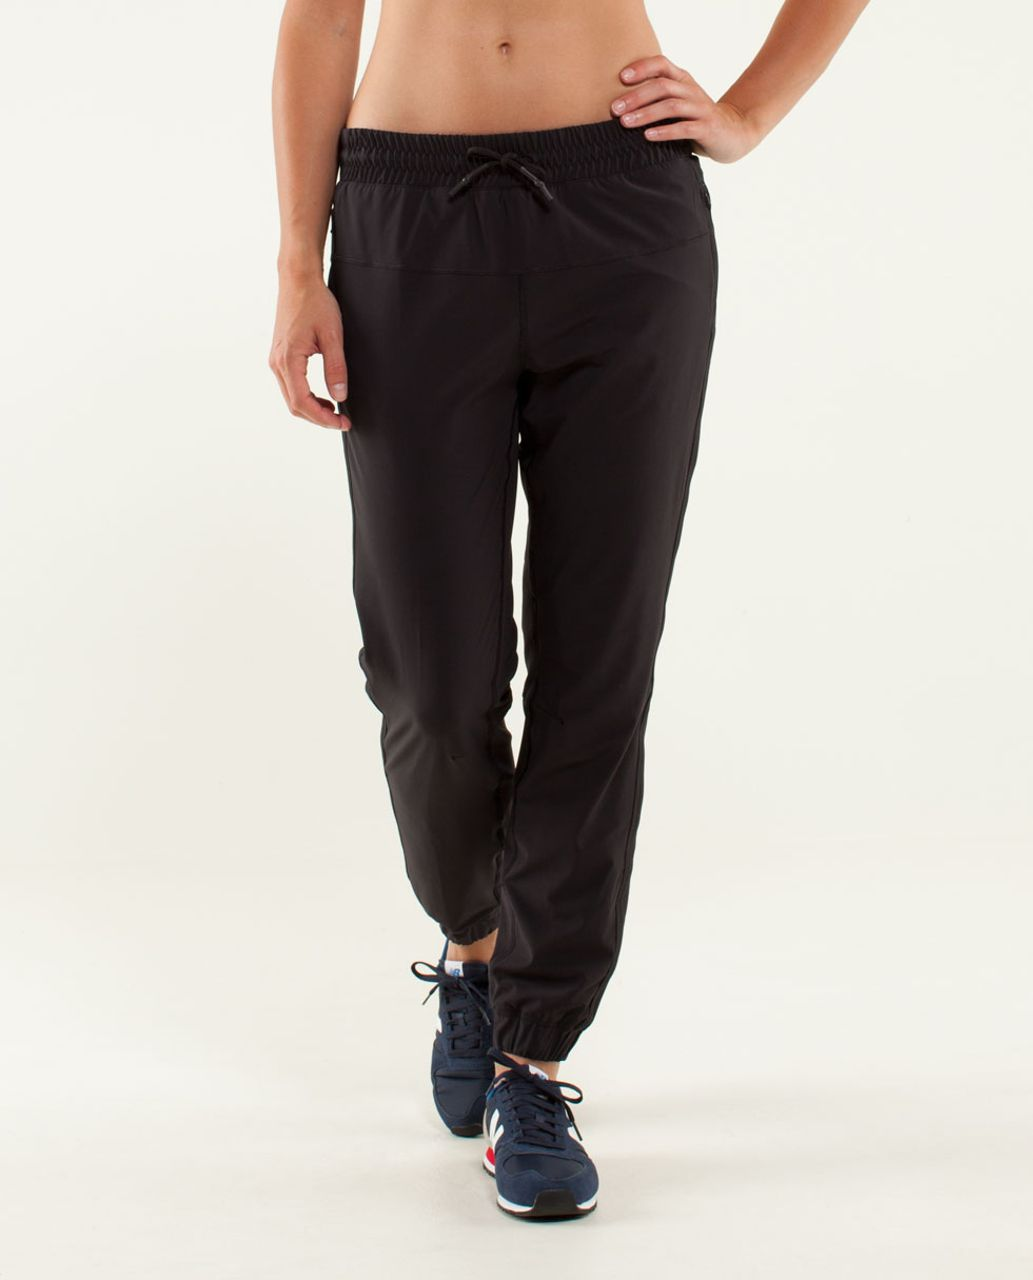 Lululemon Track To Reality Pant (First Release) - Black